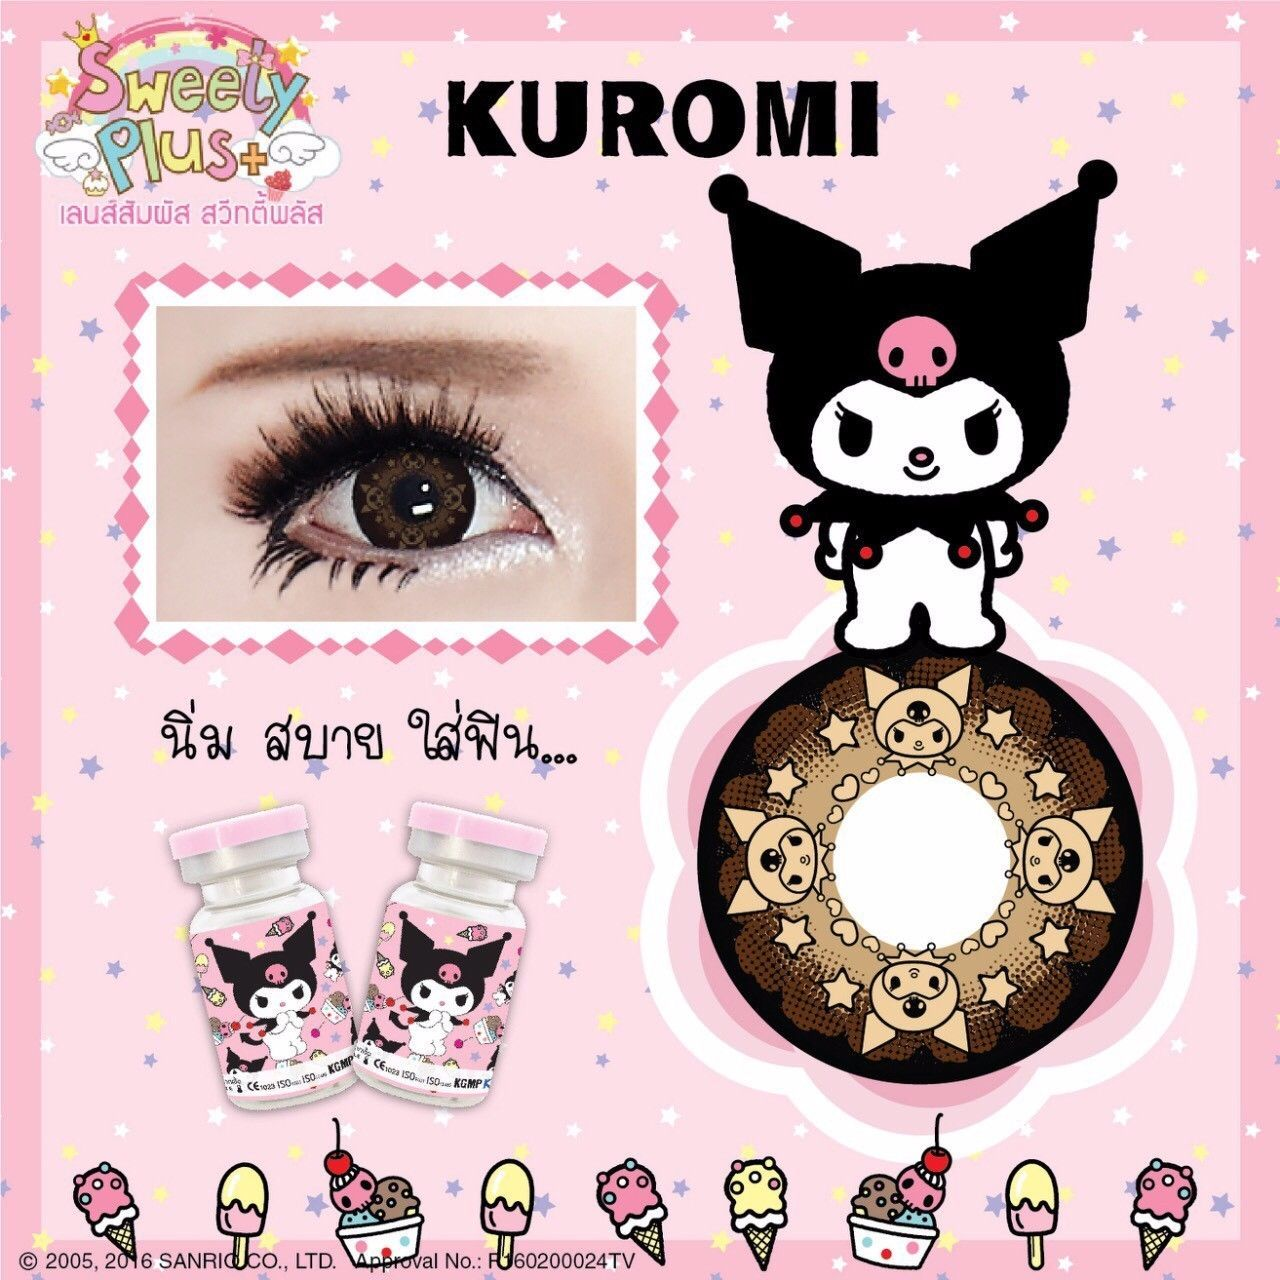 Details about Soft Color Contact Lenses Hello Kitty Kuromi